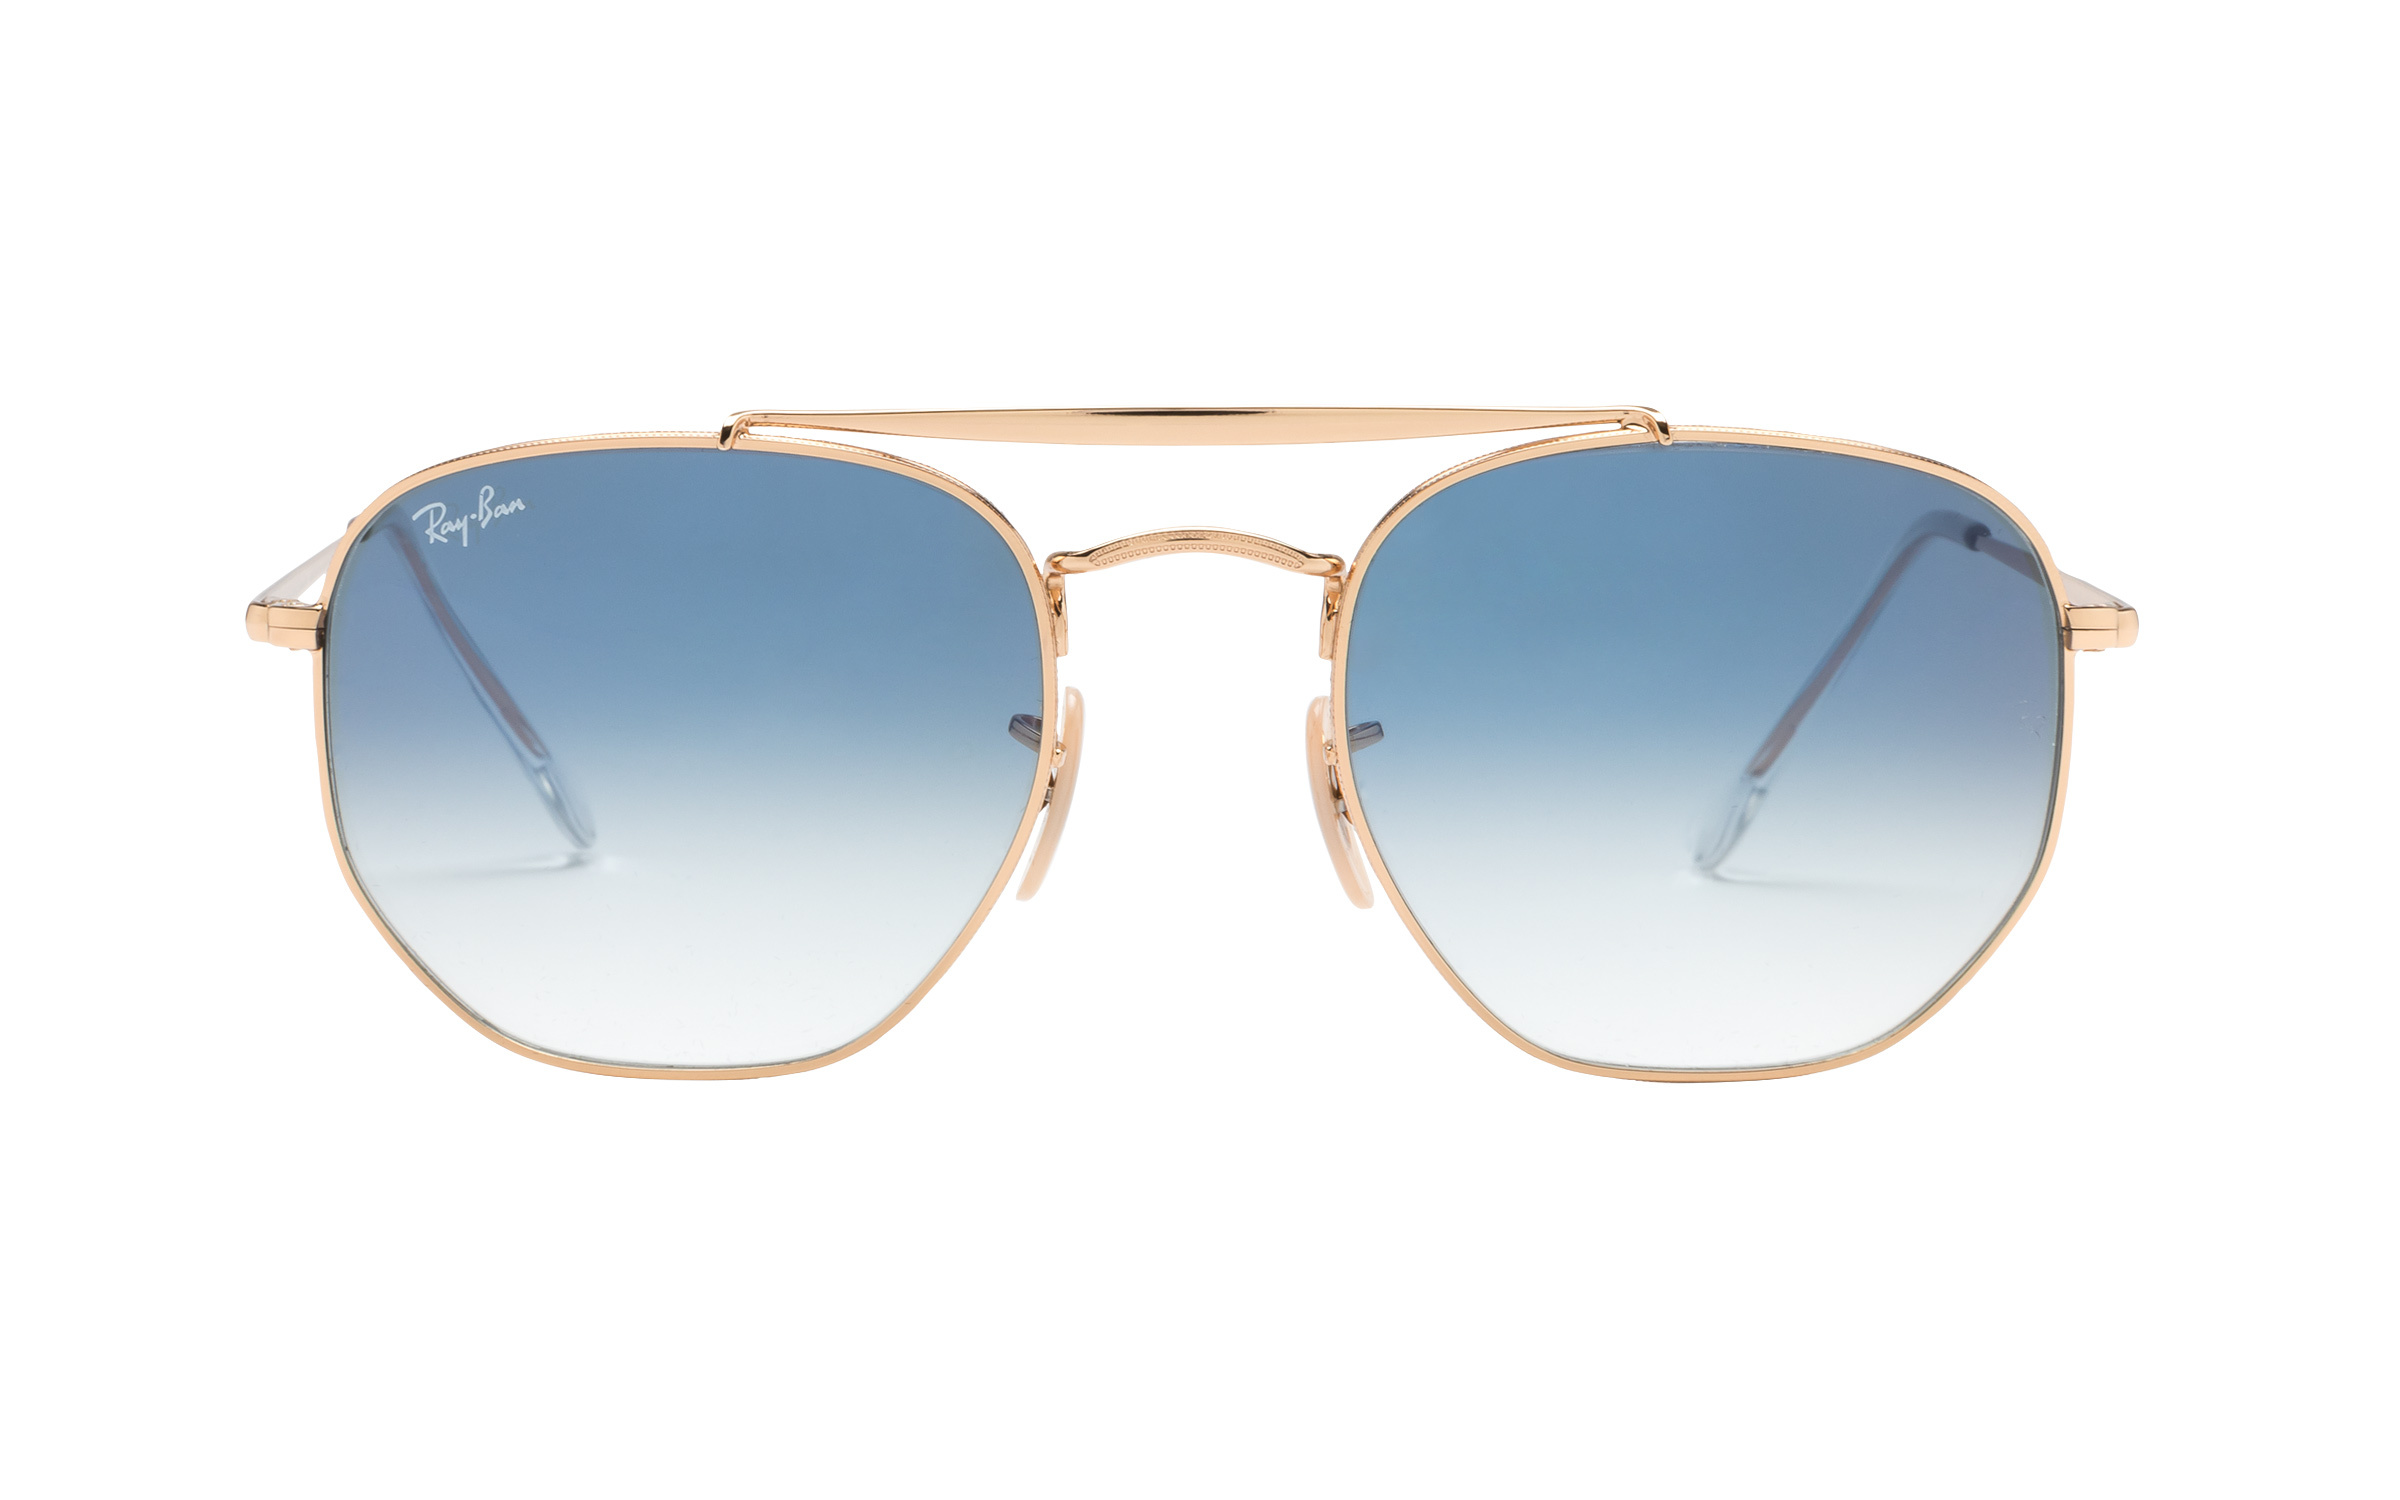 Ray-Ban Marshal 3648 001 3F 54 Sunglasses in Light Blue Gradient Gold | Metal - Online Coastal